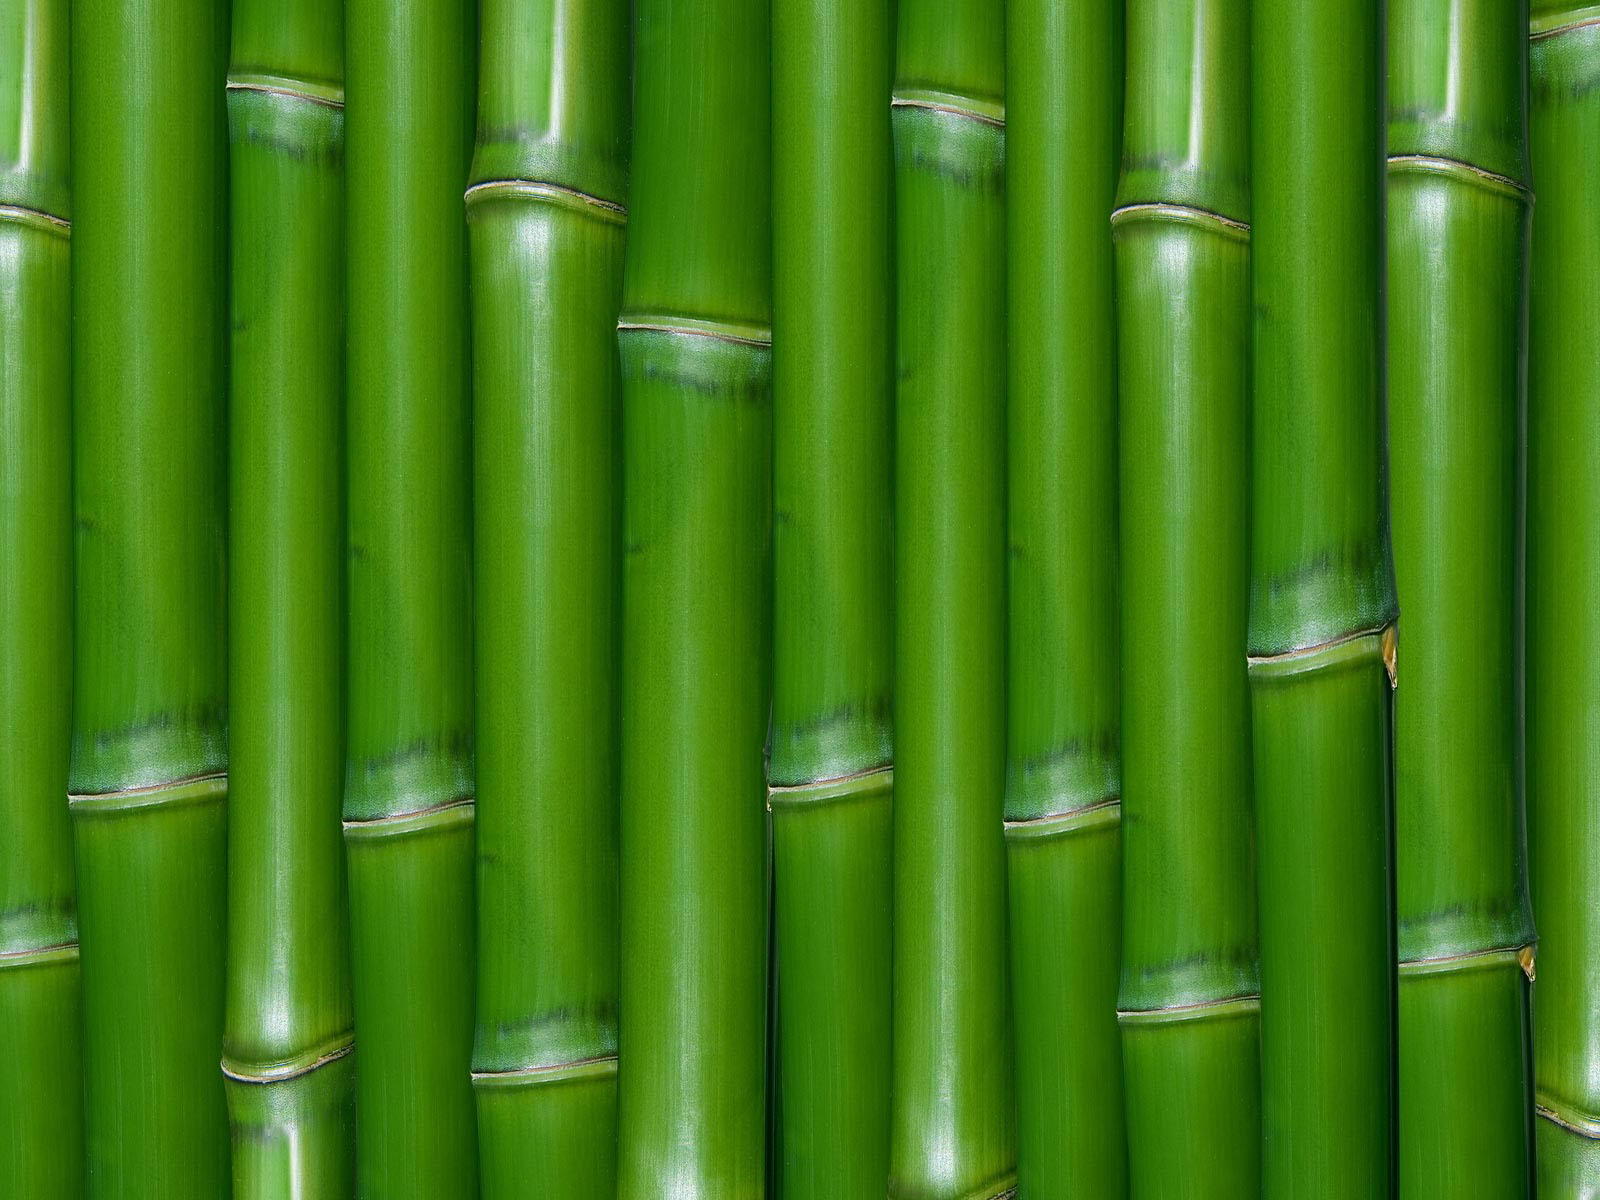 Wallpapers bamboo wall wallpapers for Bamboo wallpaper for walls